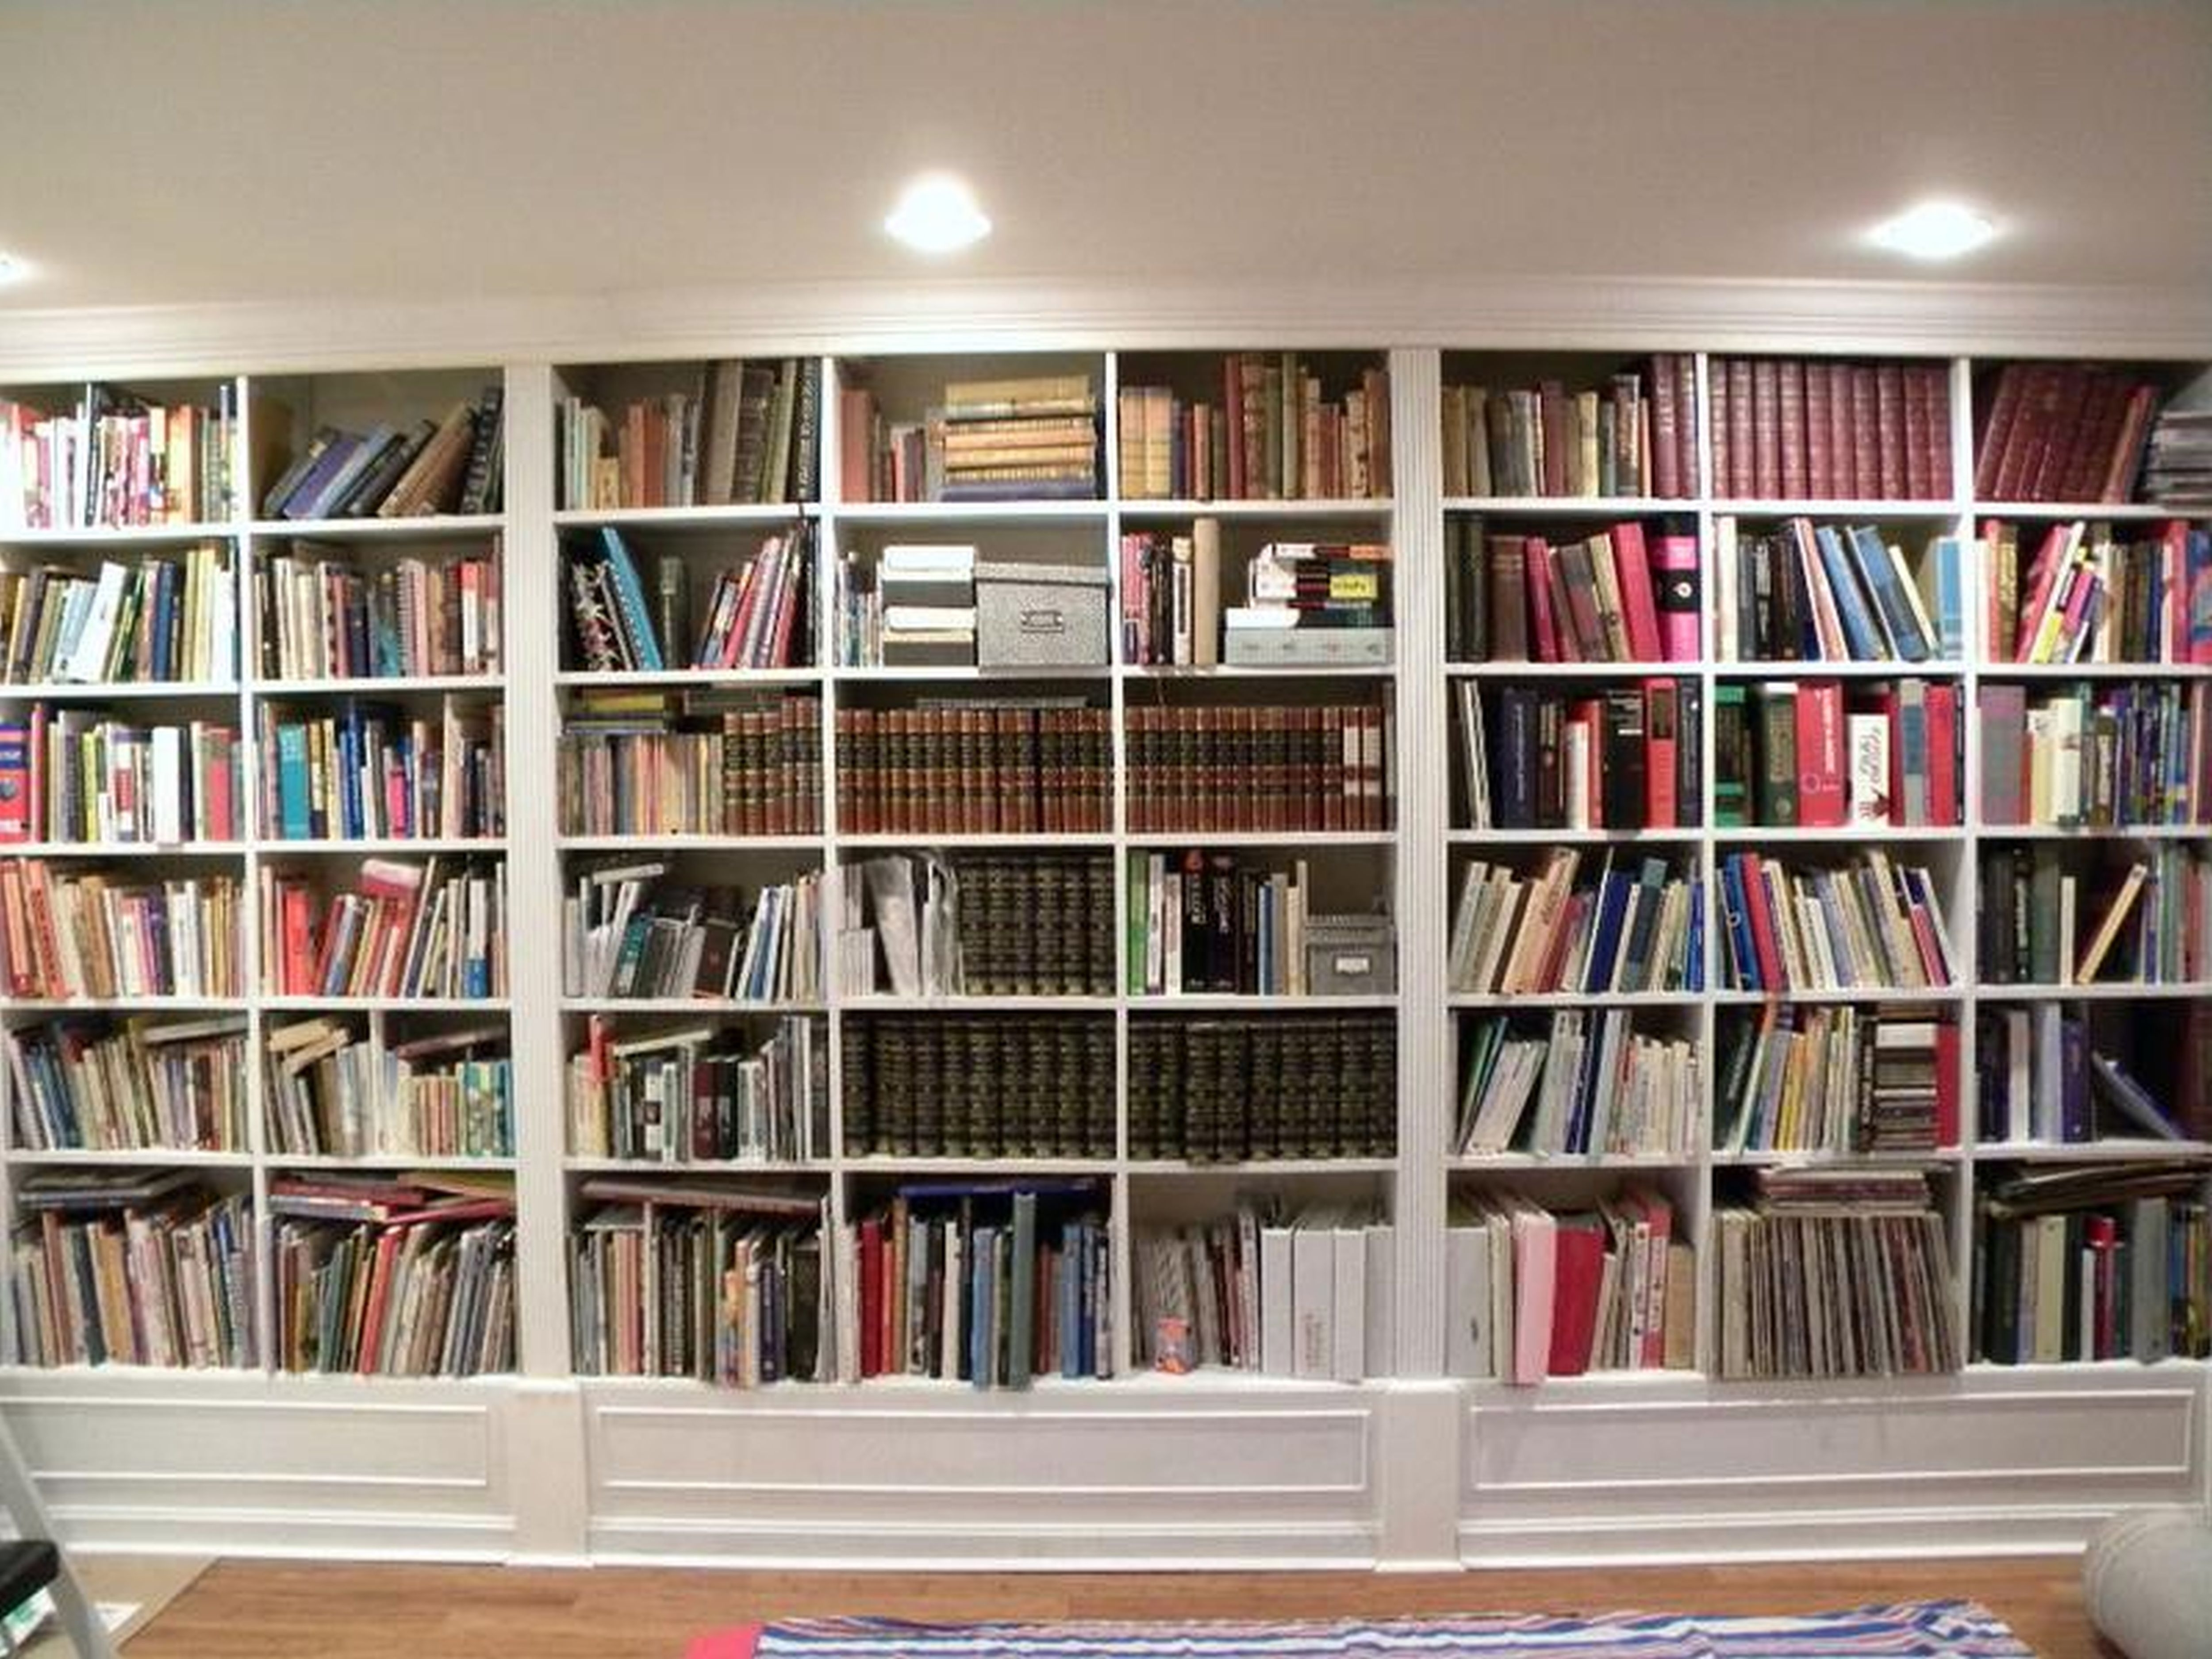 Most Recently Released Full Wall Bookshelf Ideas • Walls Ideas With Regard To Full Wall Bookcases (View 10 of 15)